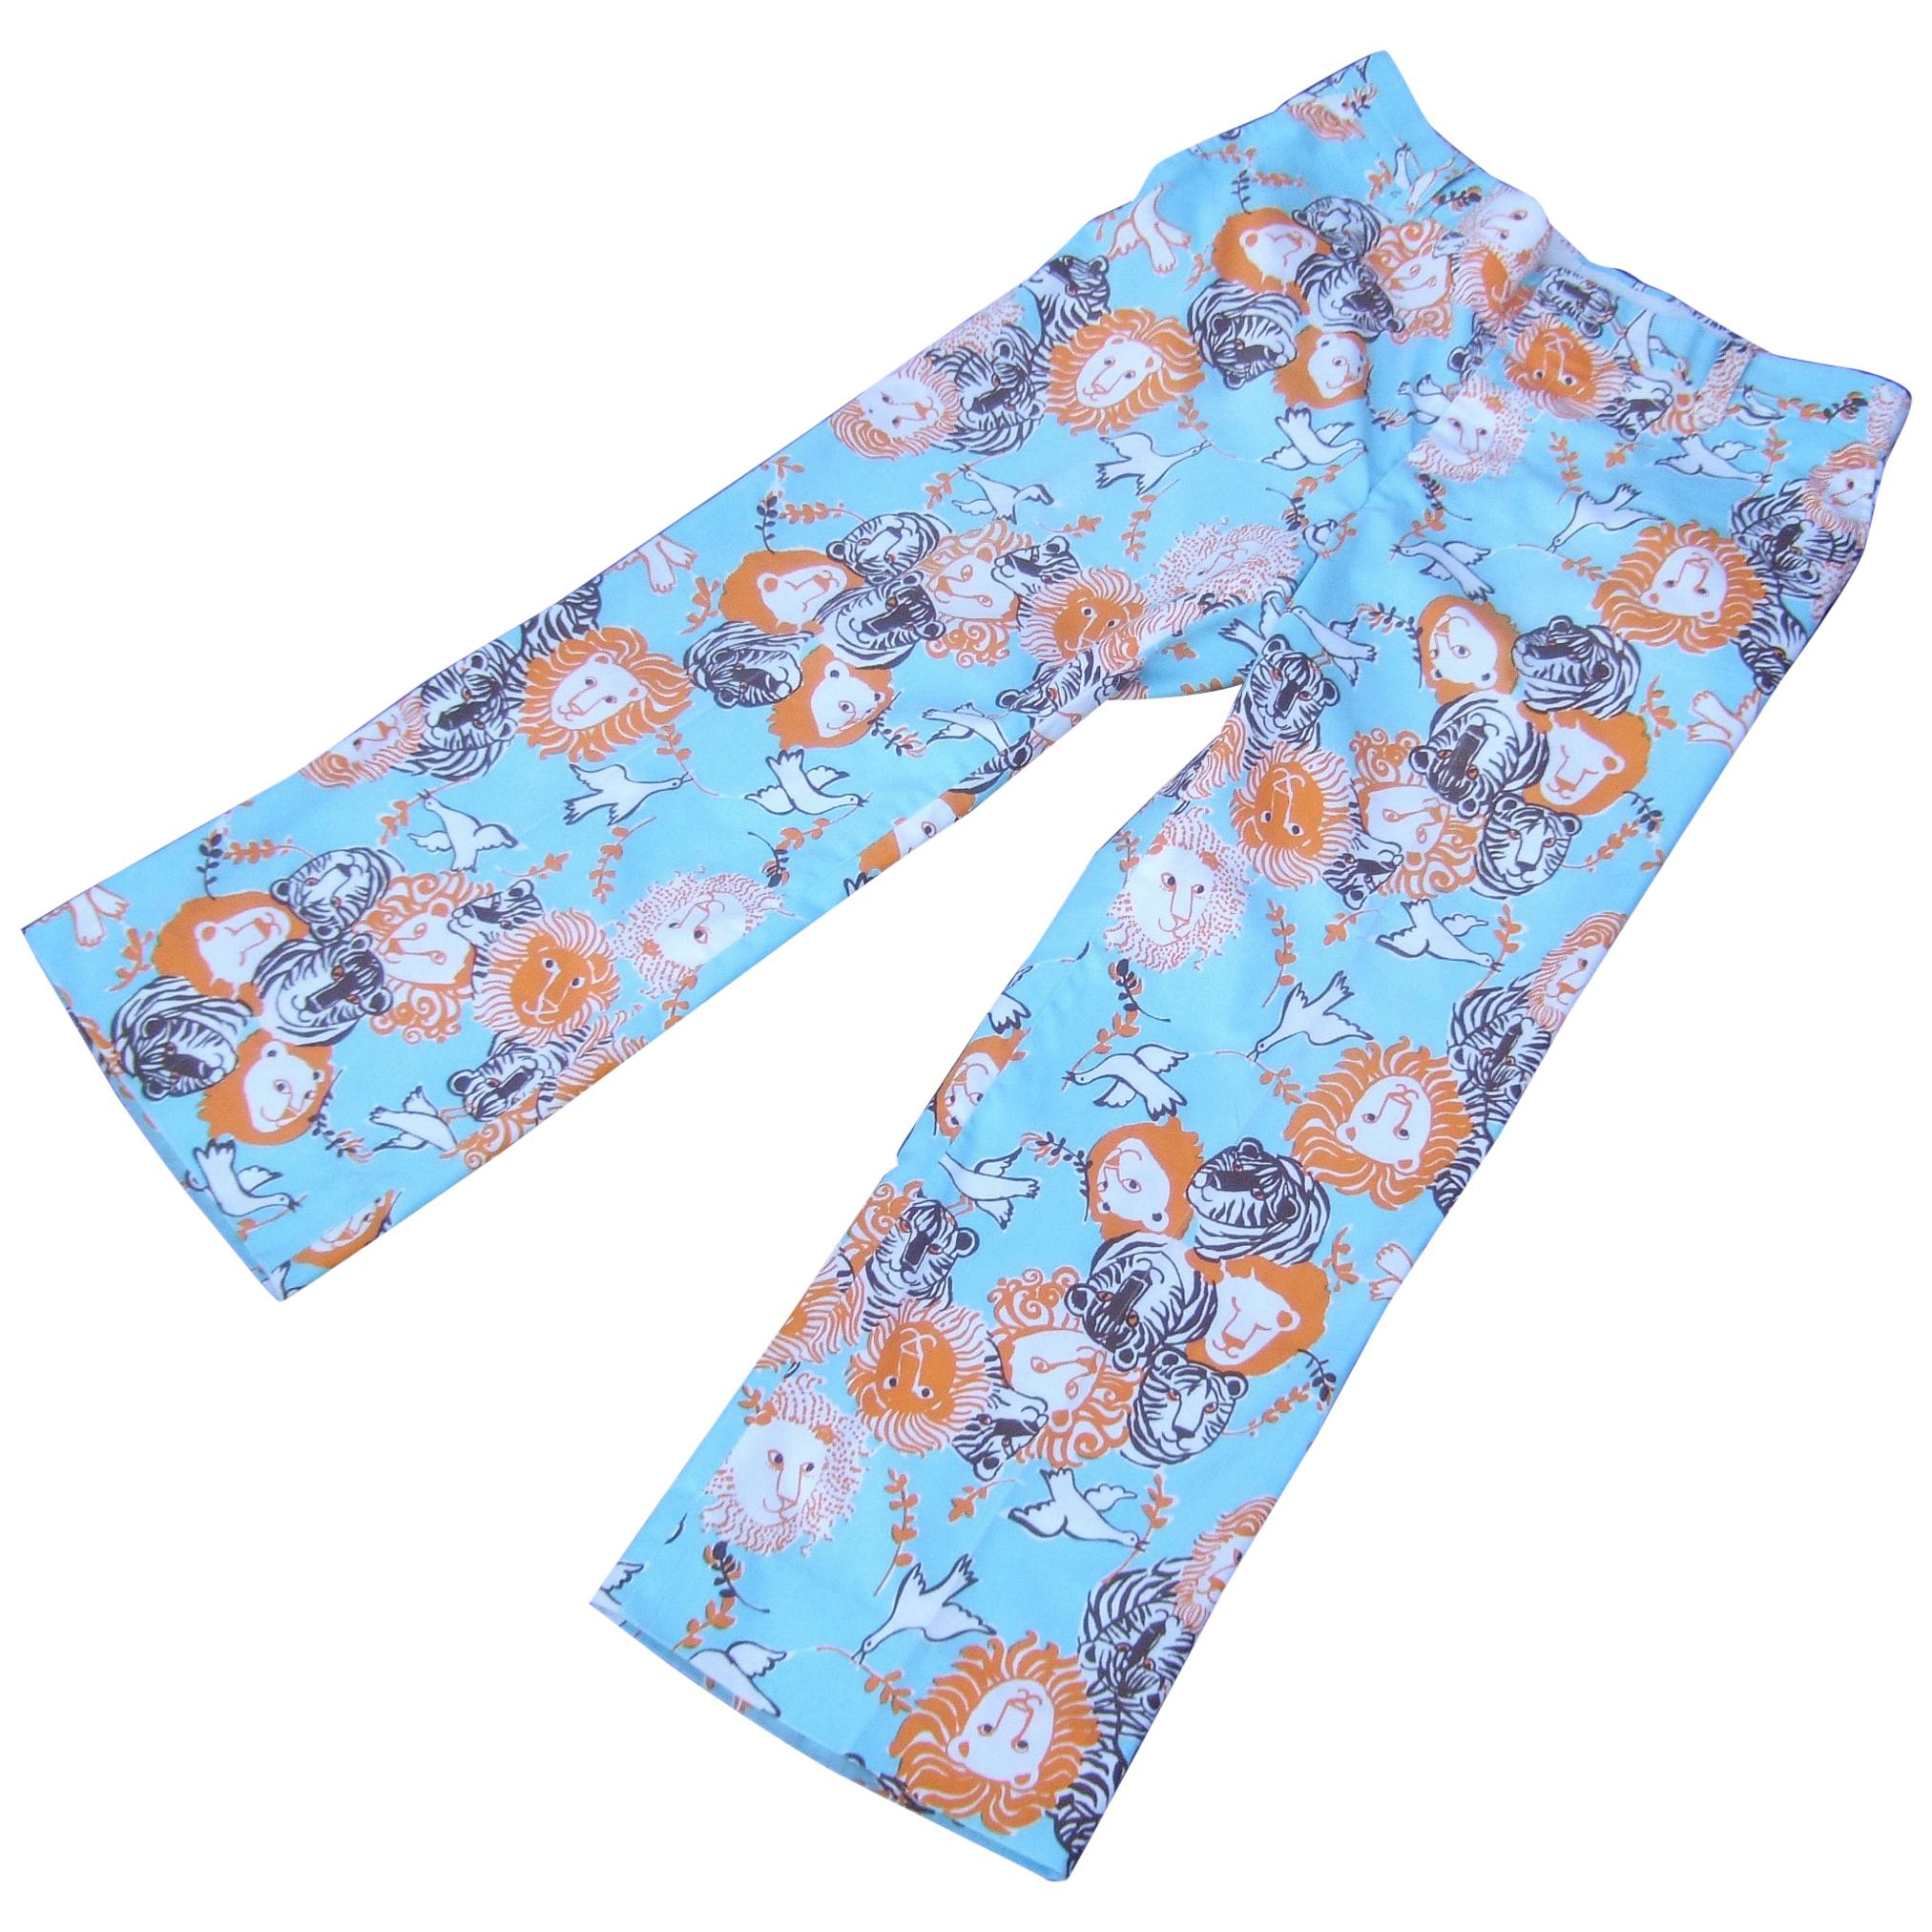 Lilly Pulitzer Mens Whimsical Feline Print Resort Trousers c 1970s